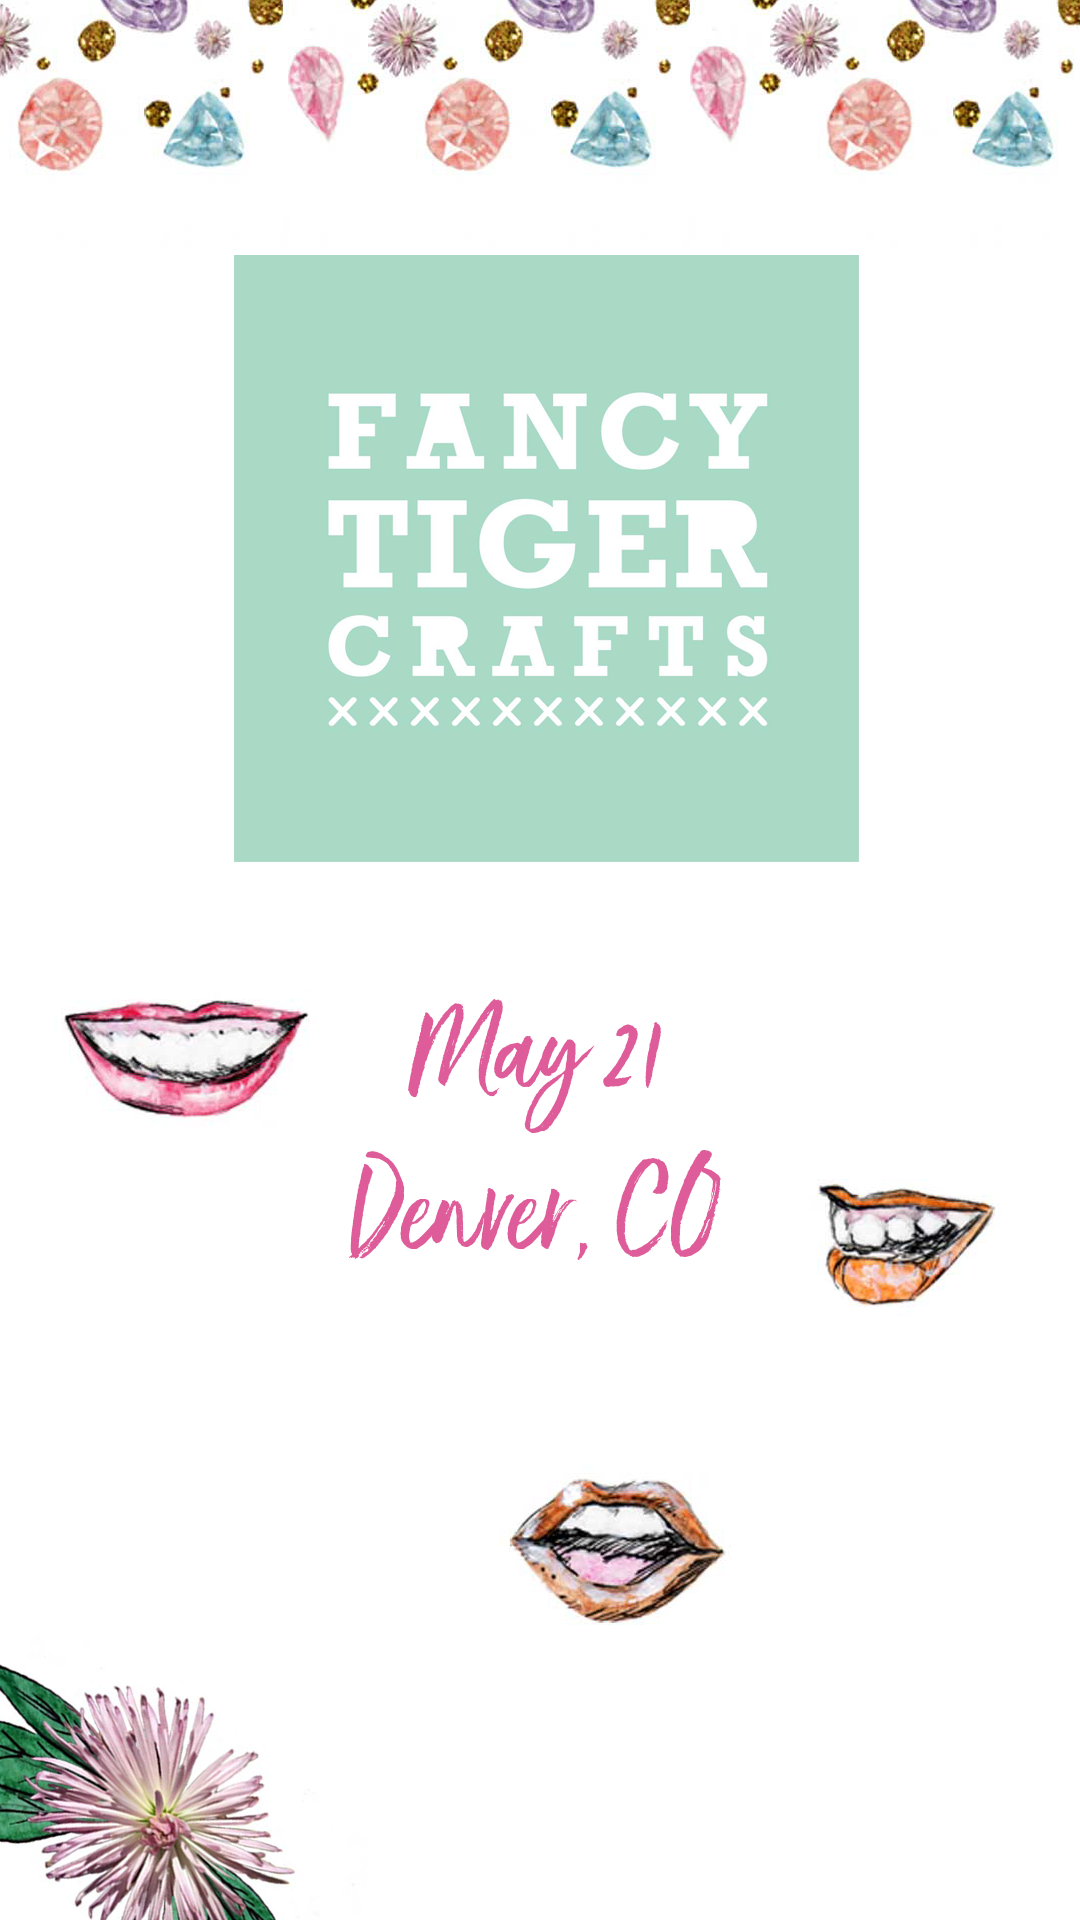 Book Signing at Fancy Tiger Crafts Denver, CO